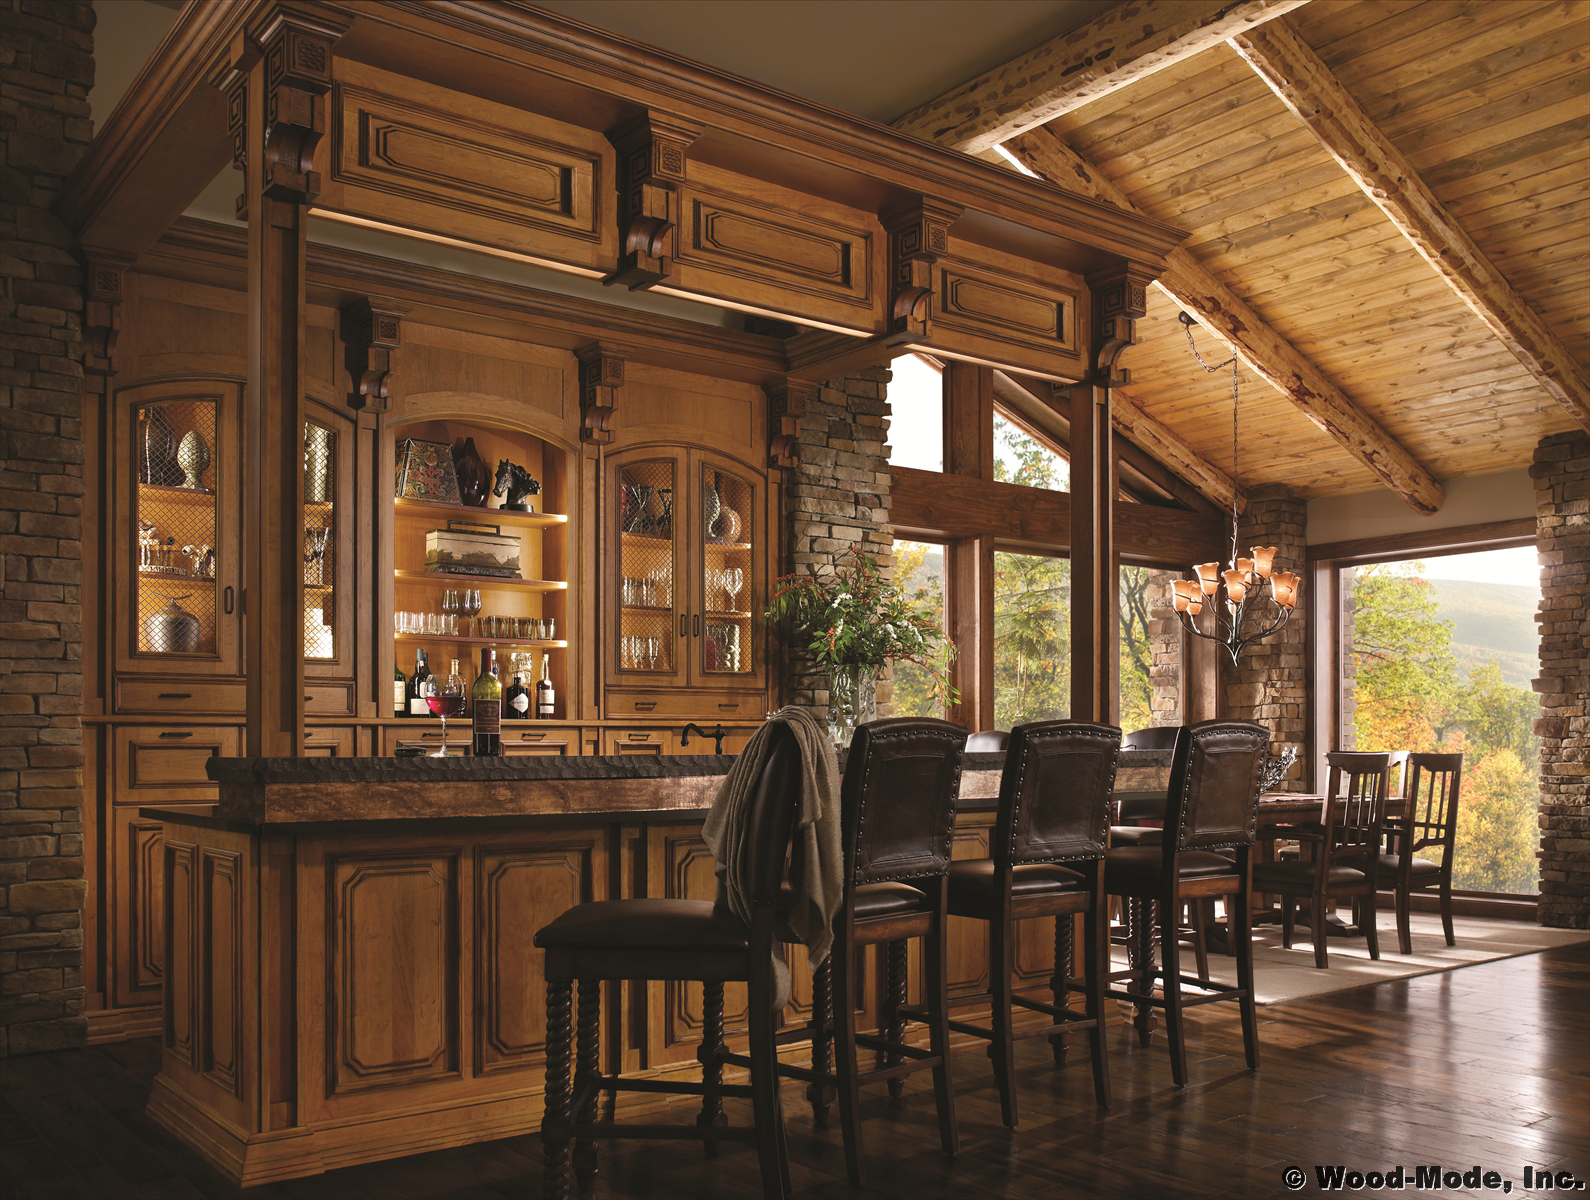 Moutain Retreat Bar by Wood-Mode